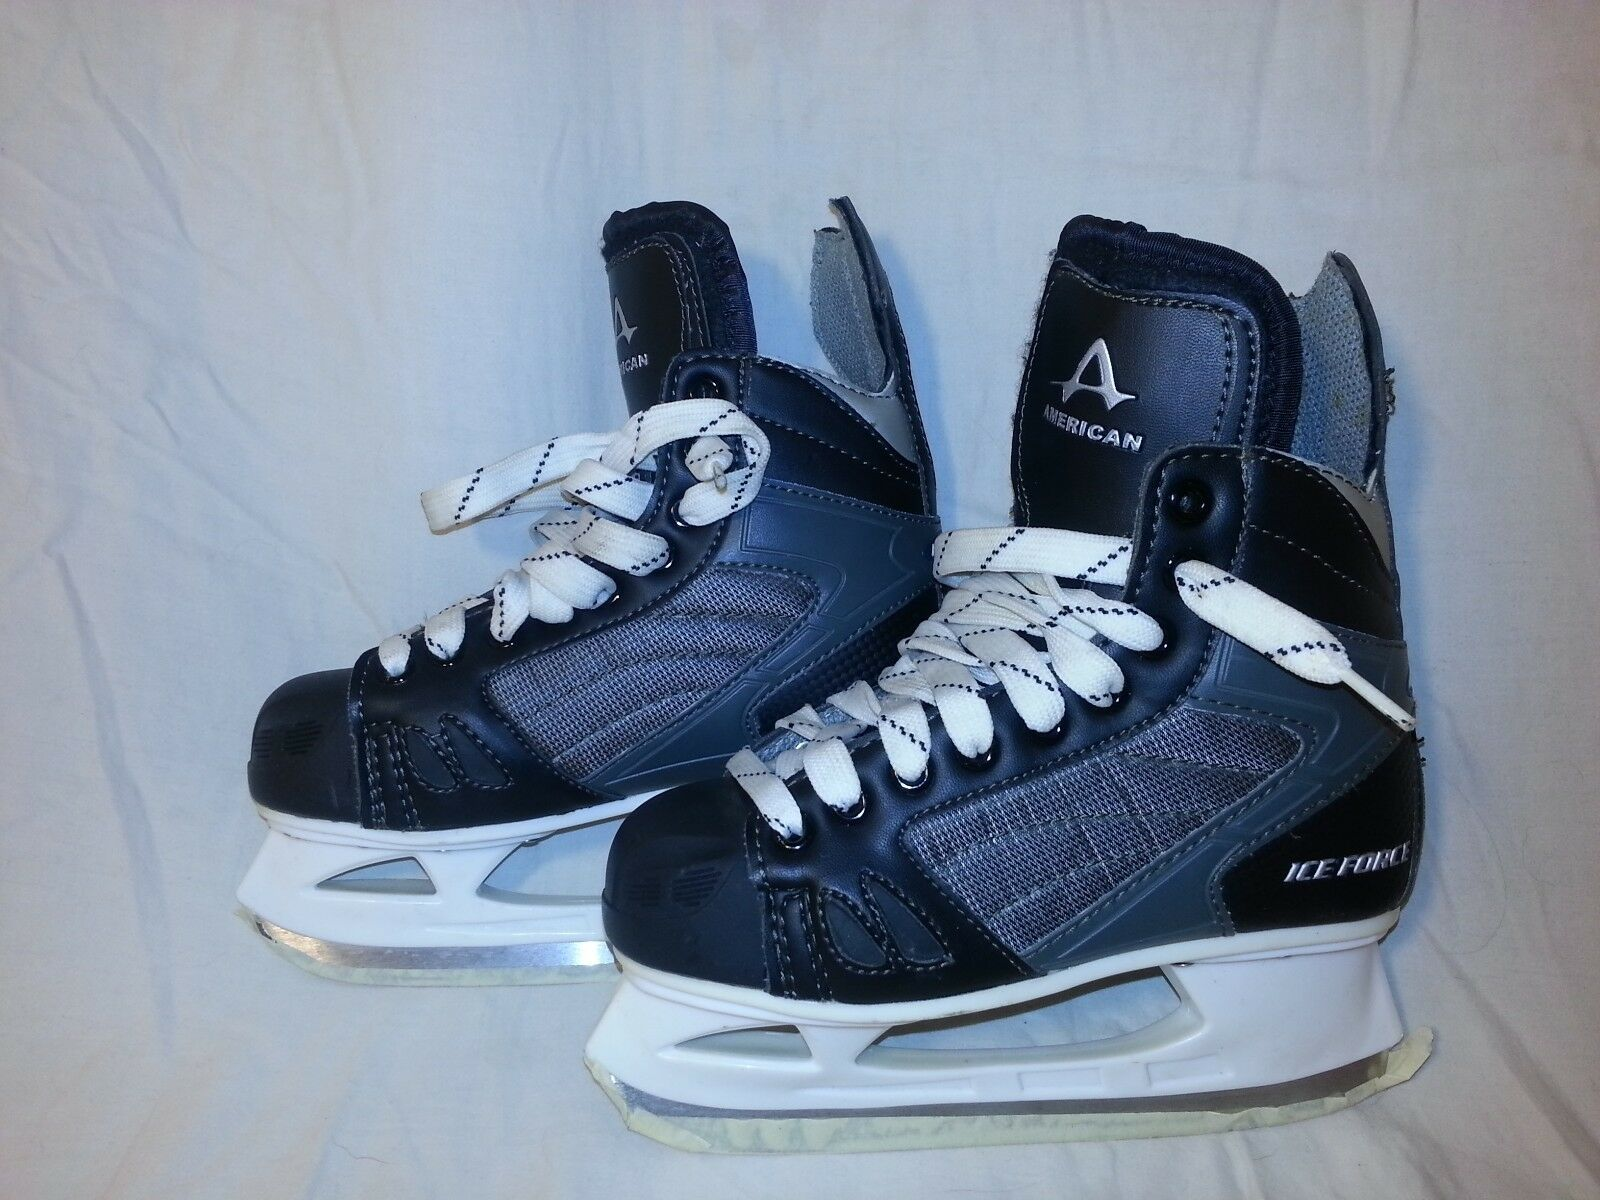 American Athletic Ice Force  Skating shoes size 4 EUC